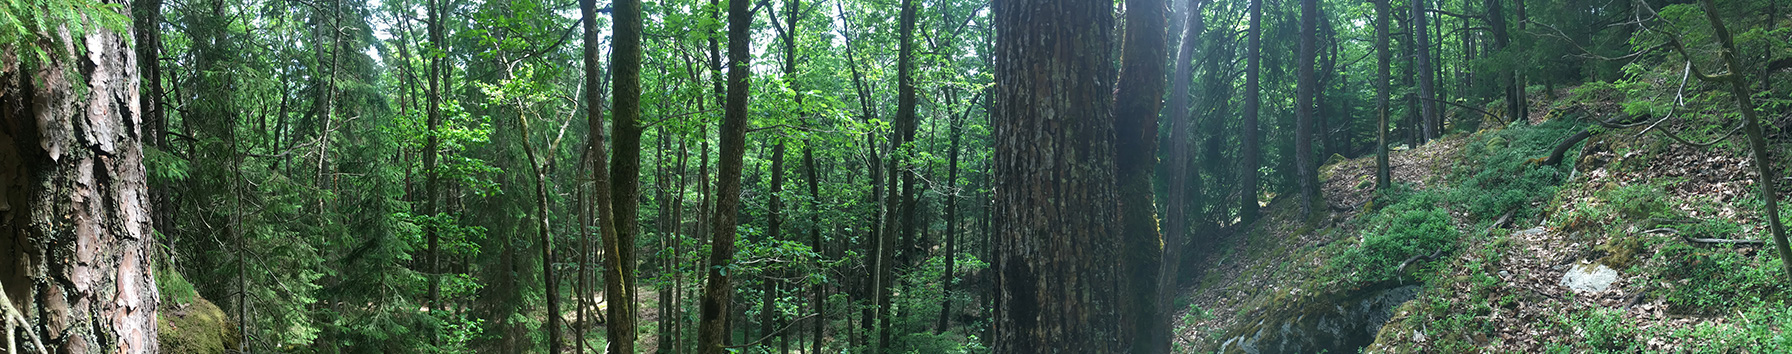 Do You Want To Help Preserve Old Growth Forest